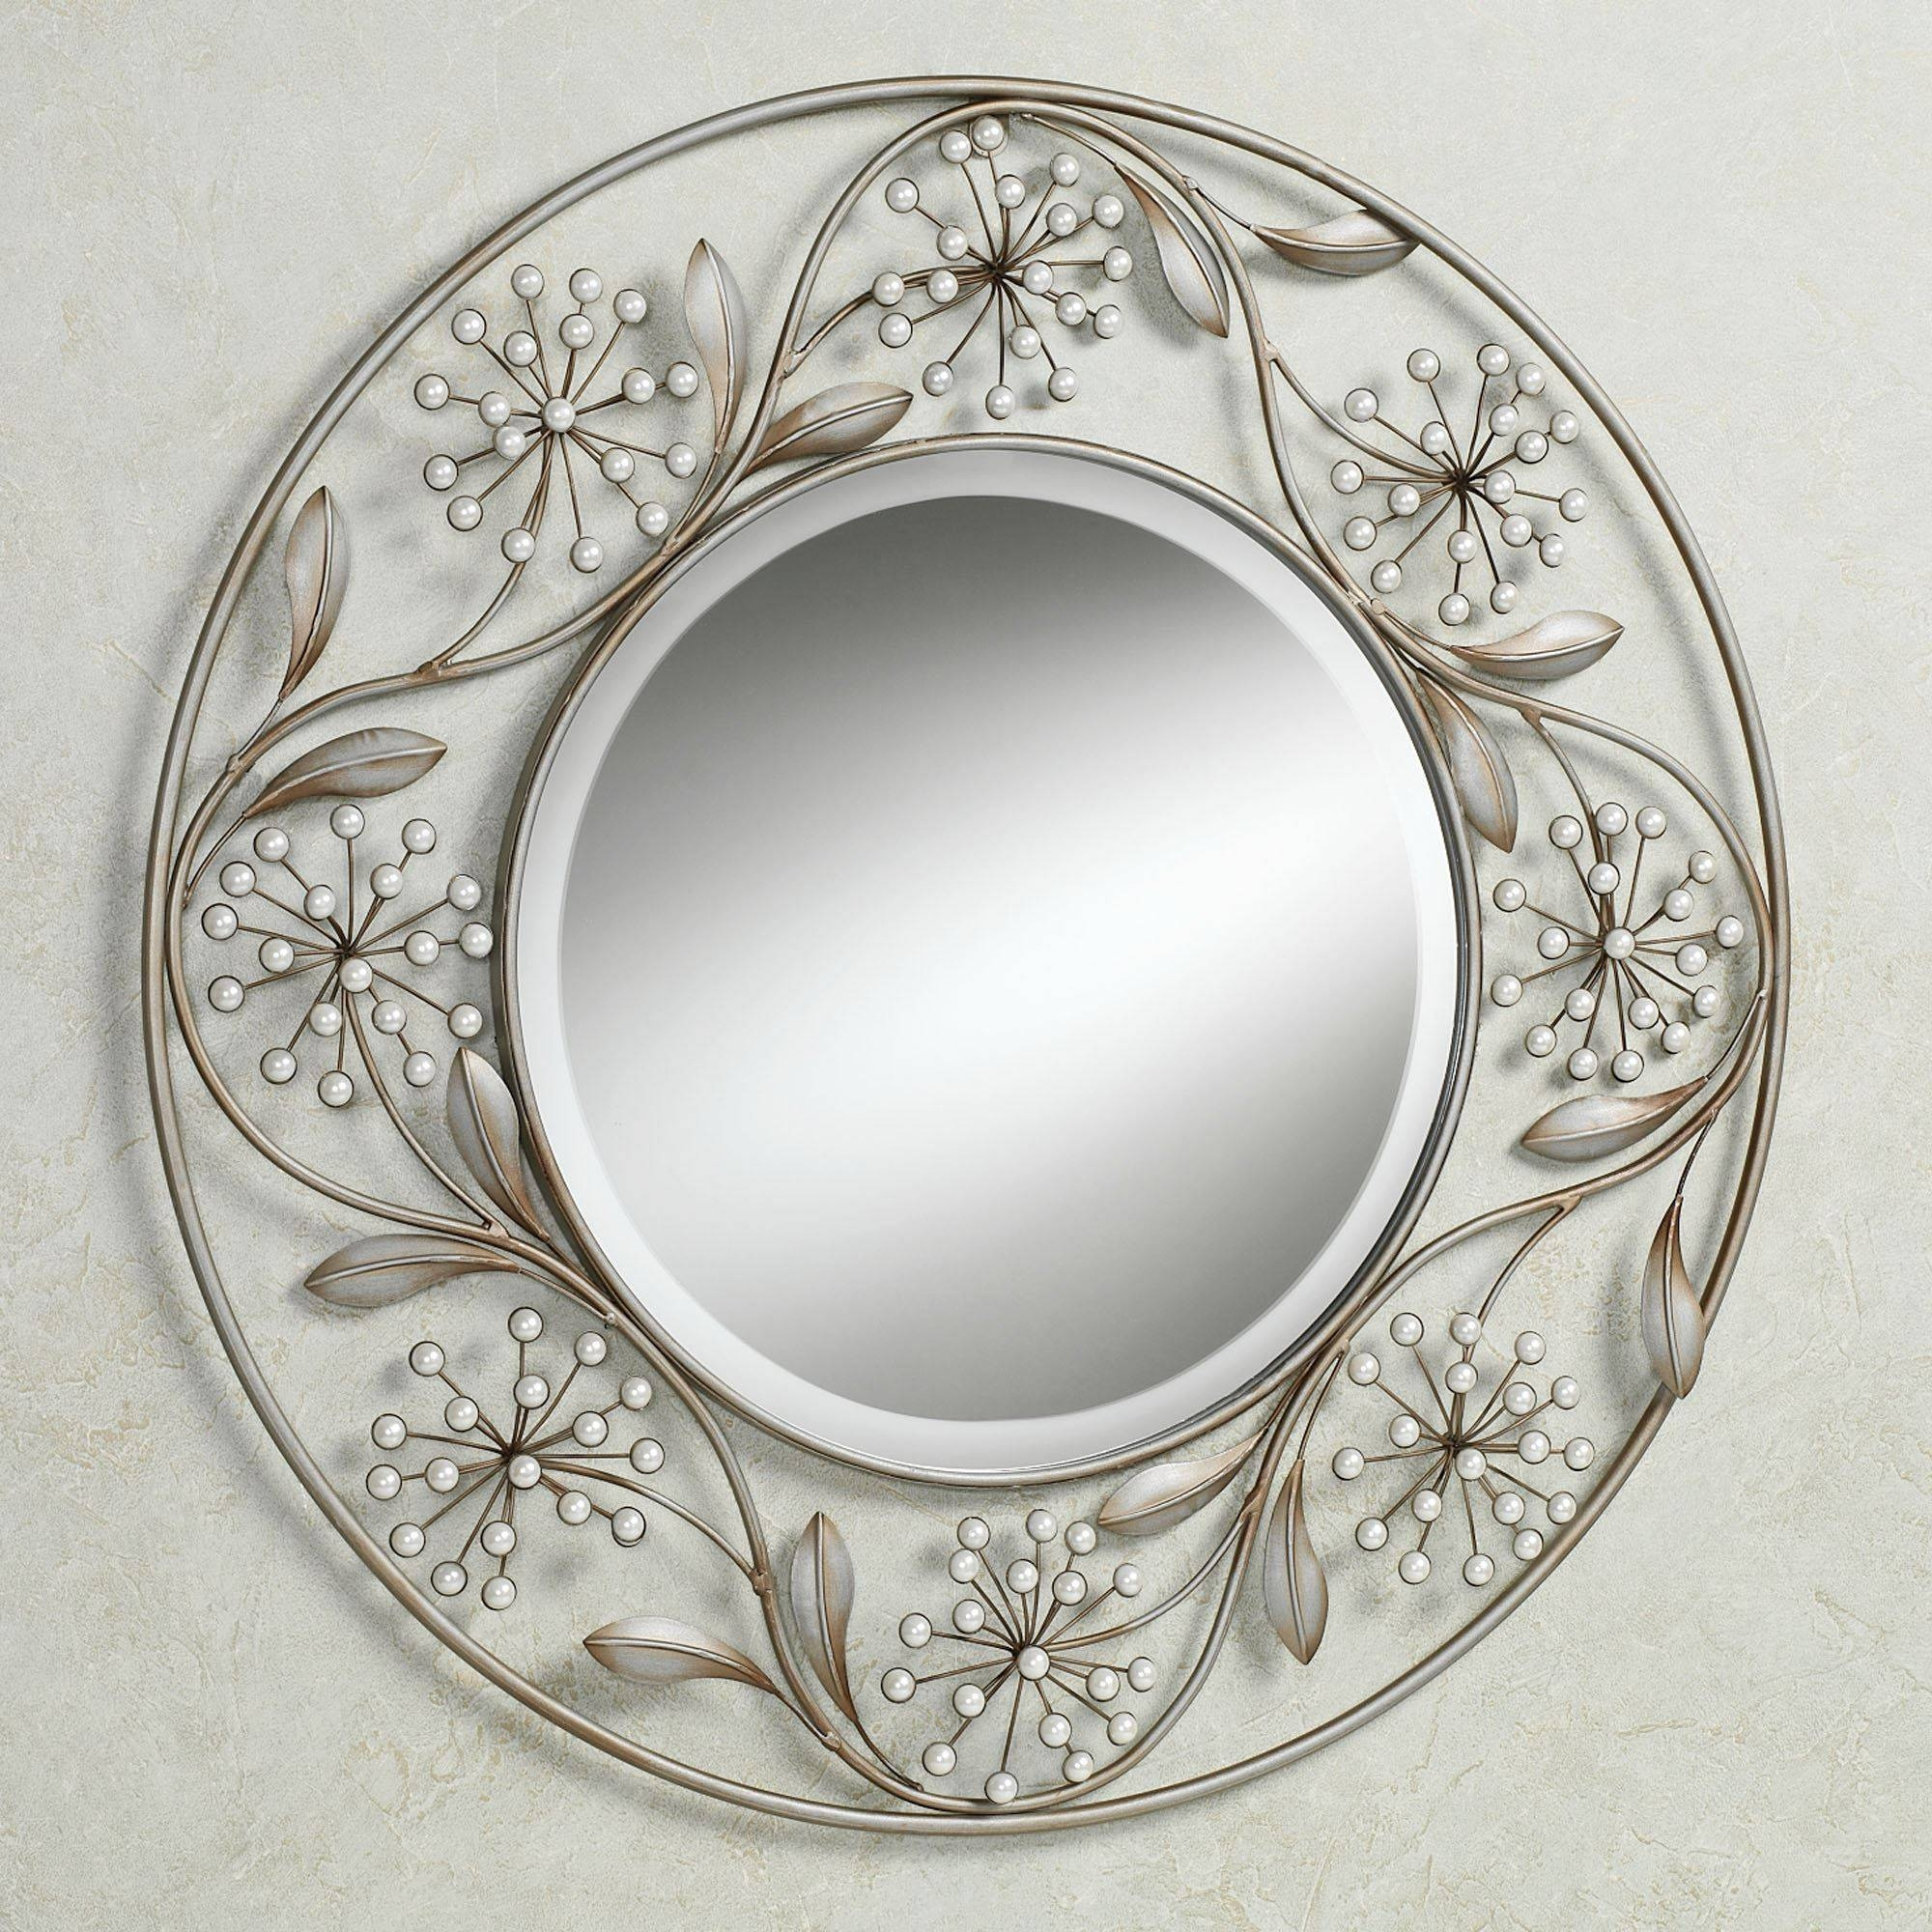 Pearlette Round Metal Wall Mirror inside Decorative Round Mirrors (Image 13 of 15)